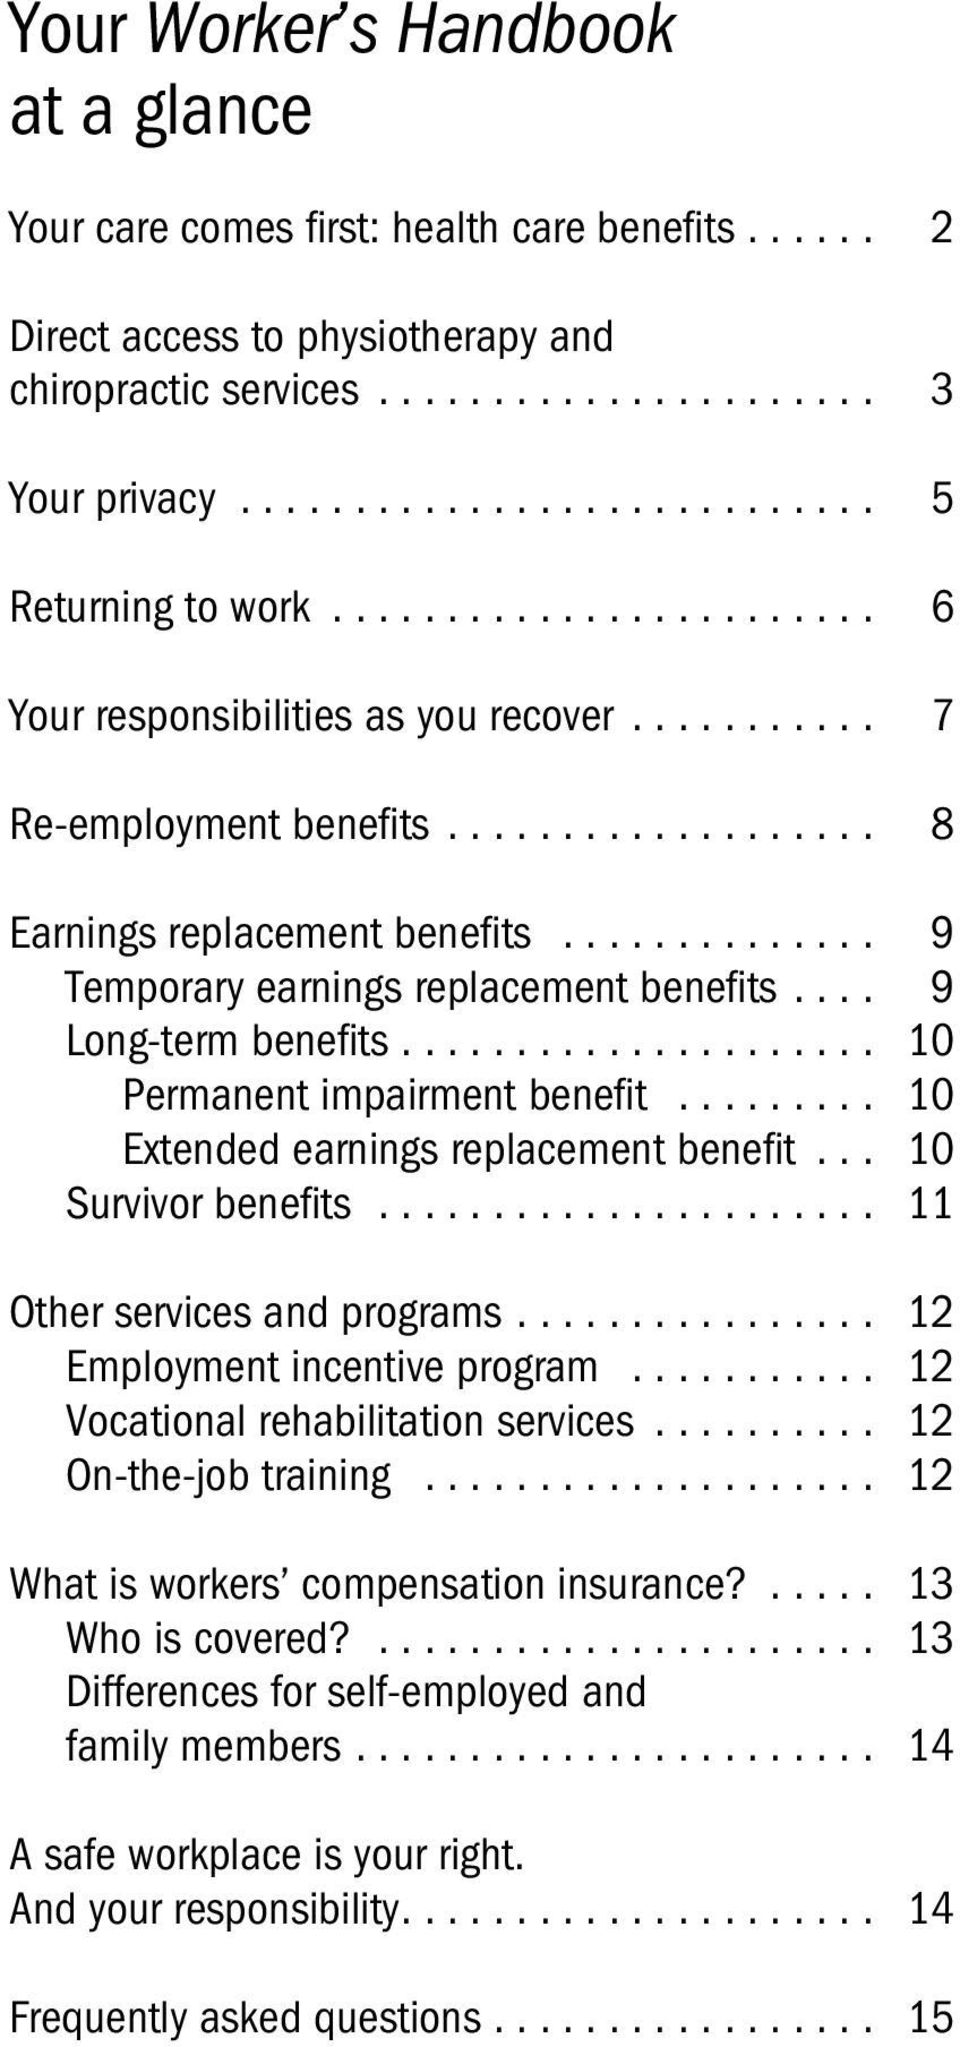 ... 10 Permanent impairment benefit... 10 Extended earnings replacement benefit... 10 Survivor benefits.... 11 Other services and programs.... 12 Employment incentive program.